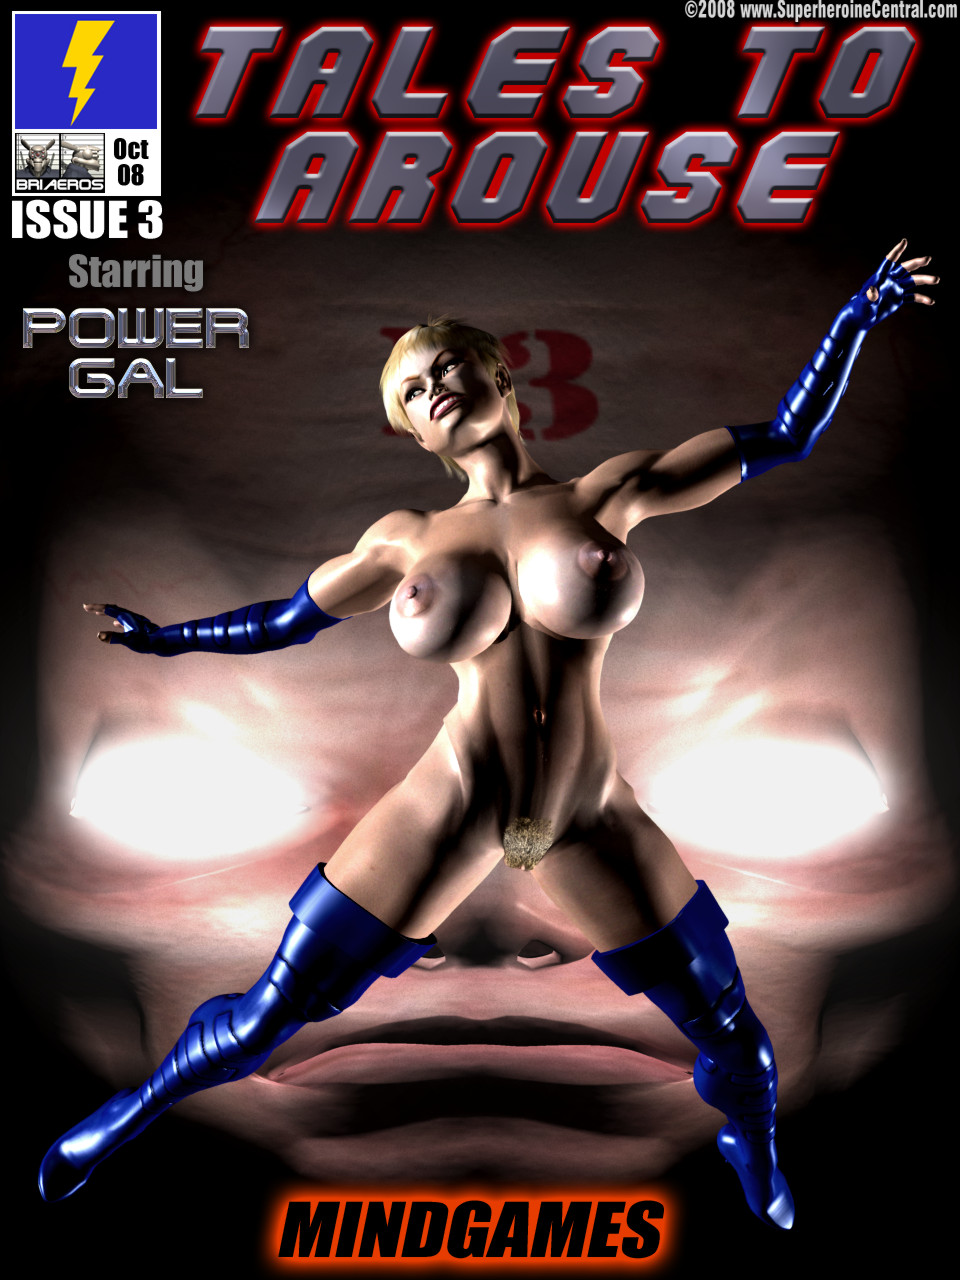 Porn Comics - Power Gal in Mind Games # 3-3D Superheroine Central porn comics 8 muses